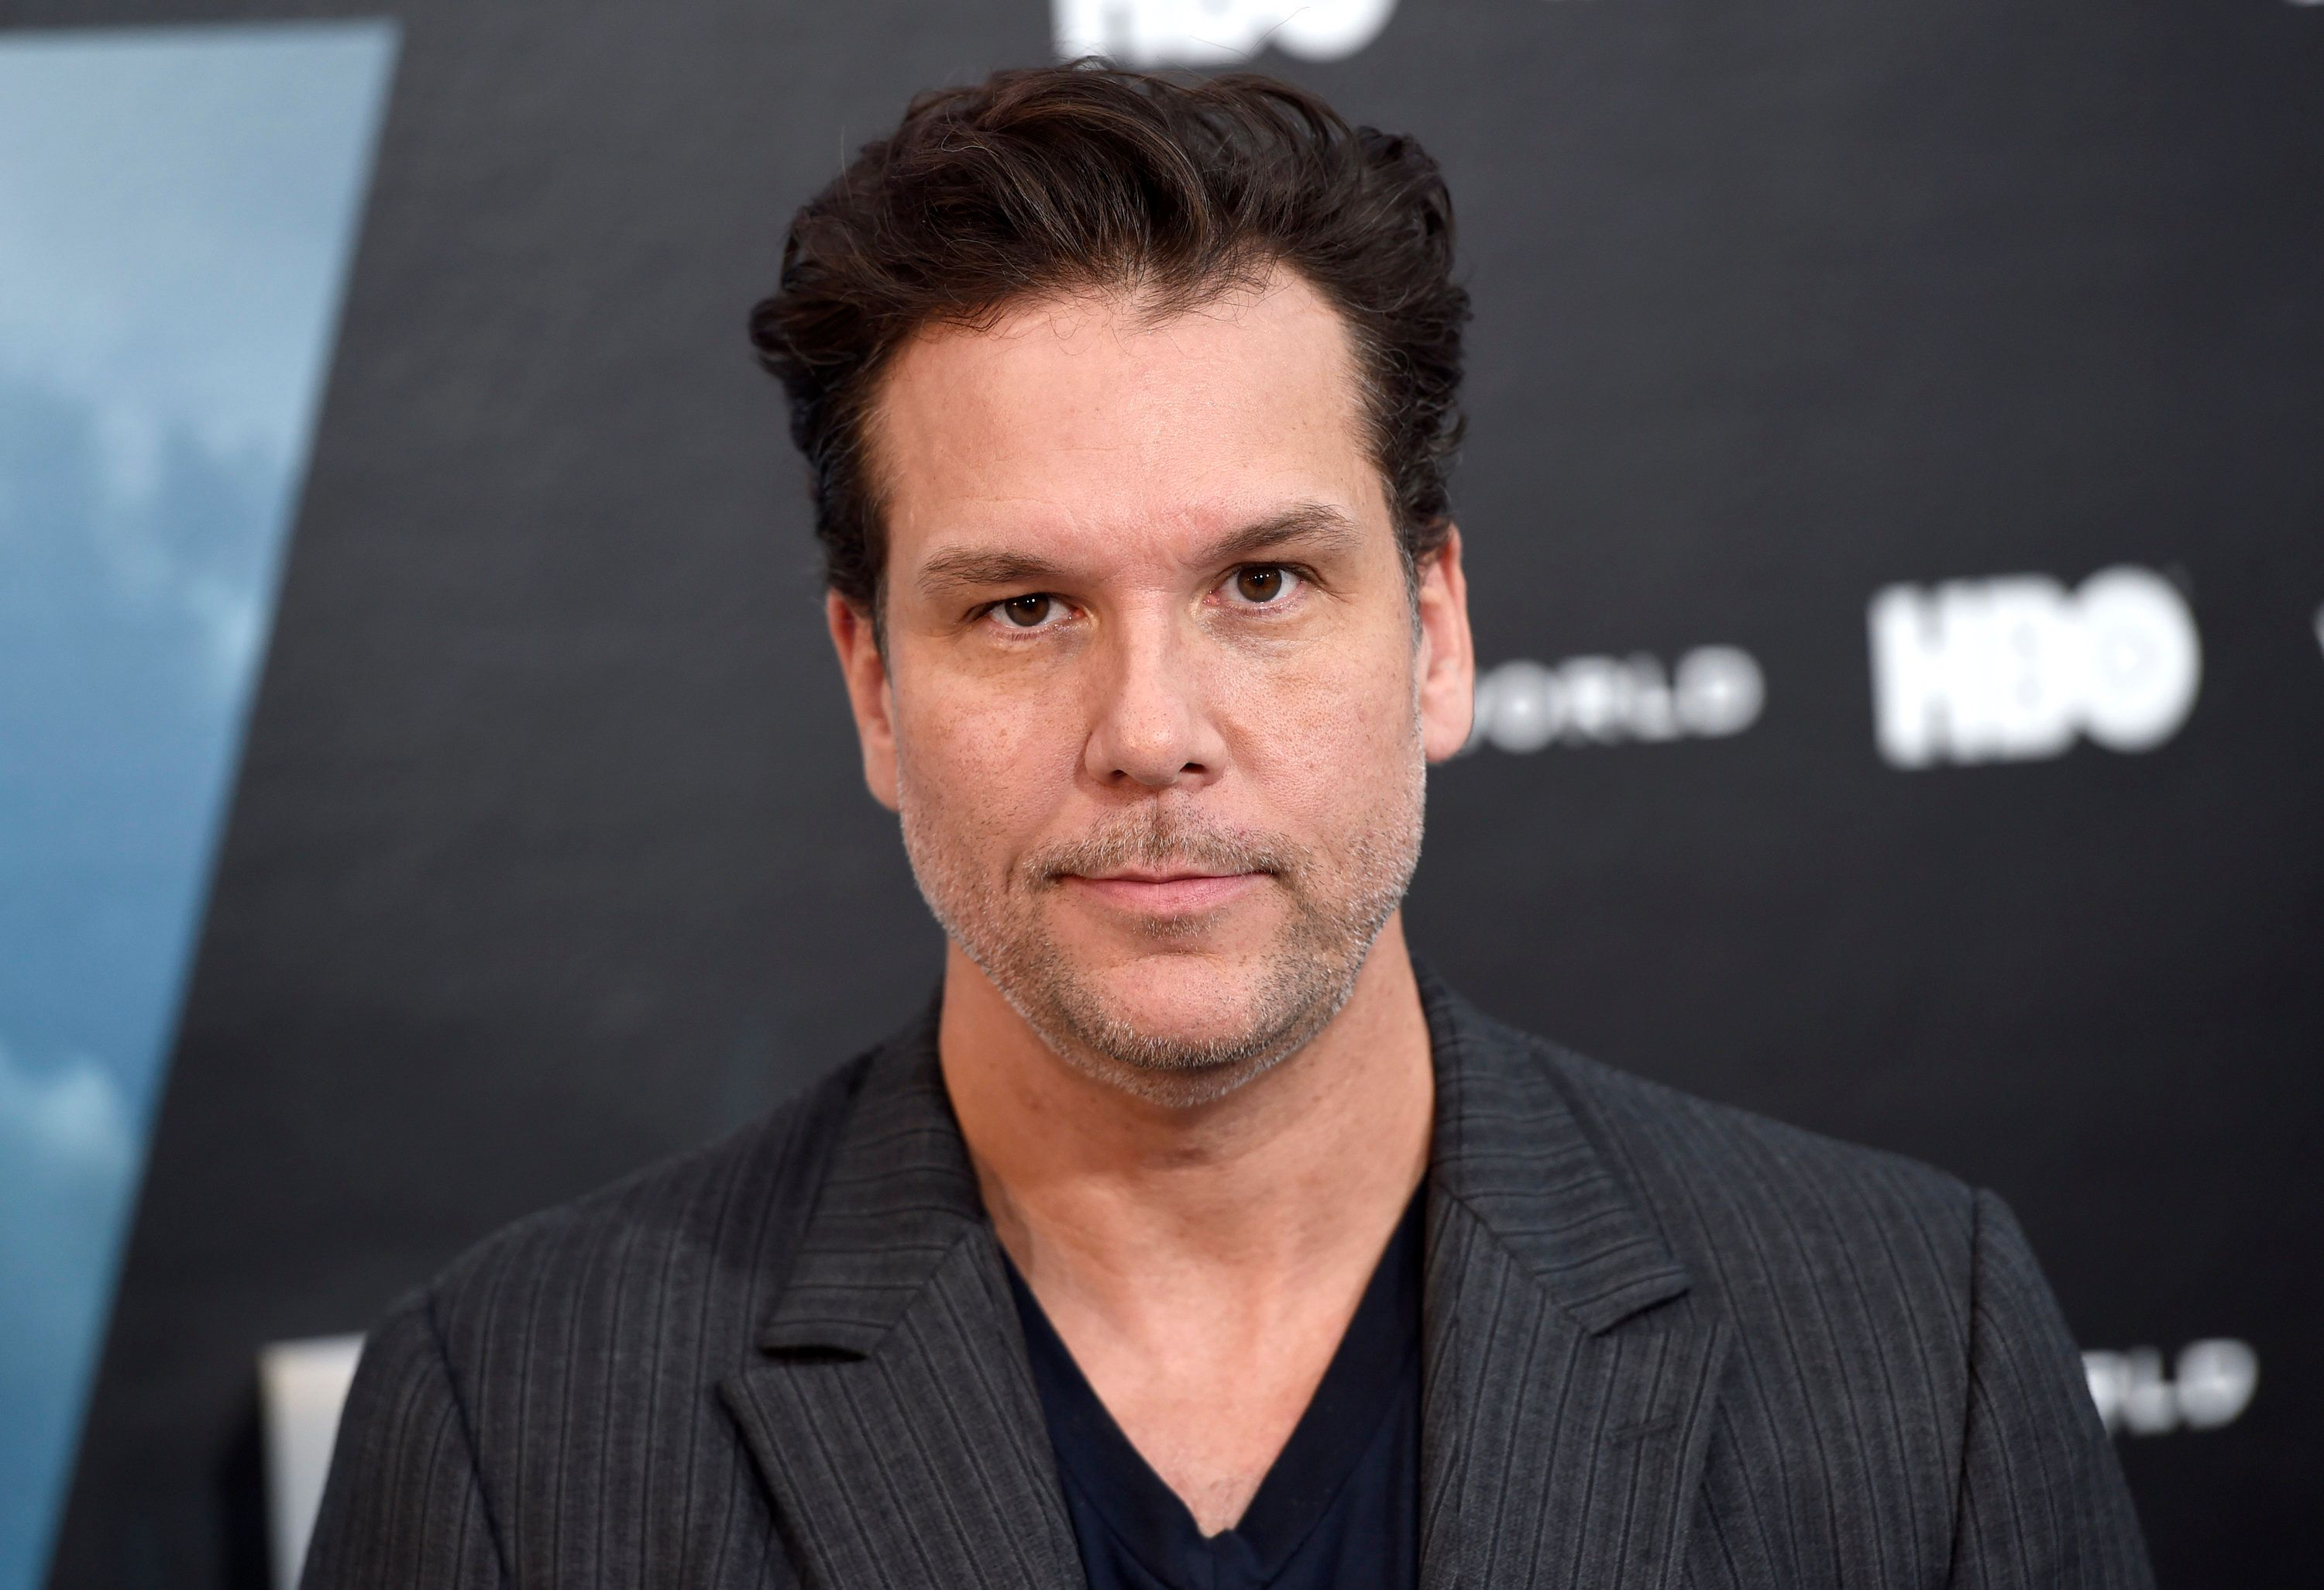 Dane Cook has since deleted the offensive tweet.